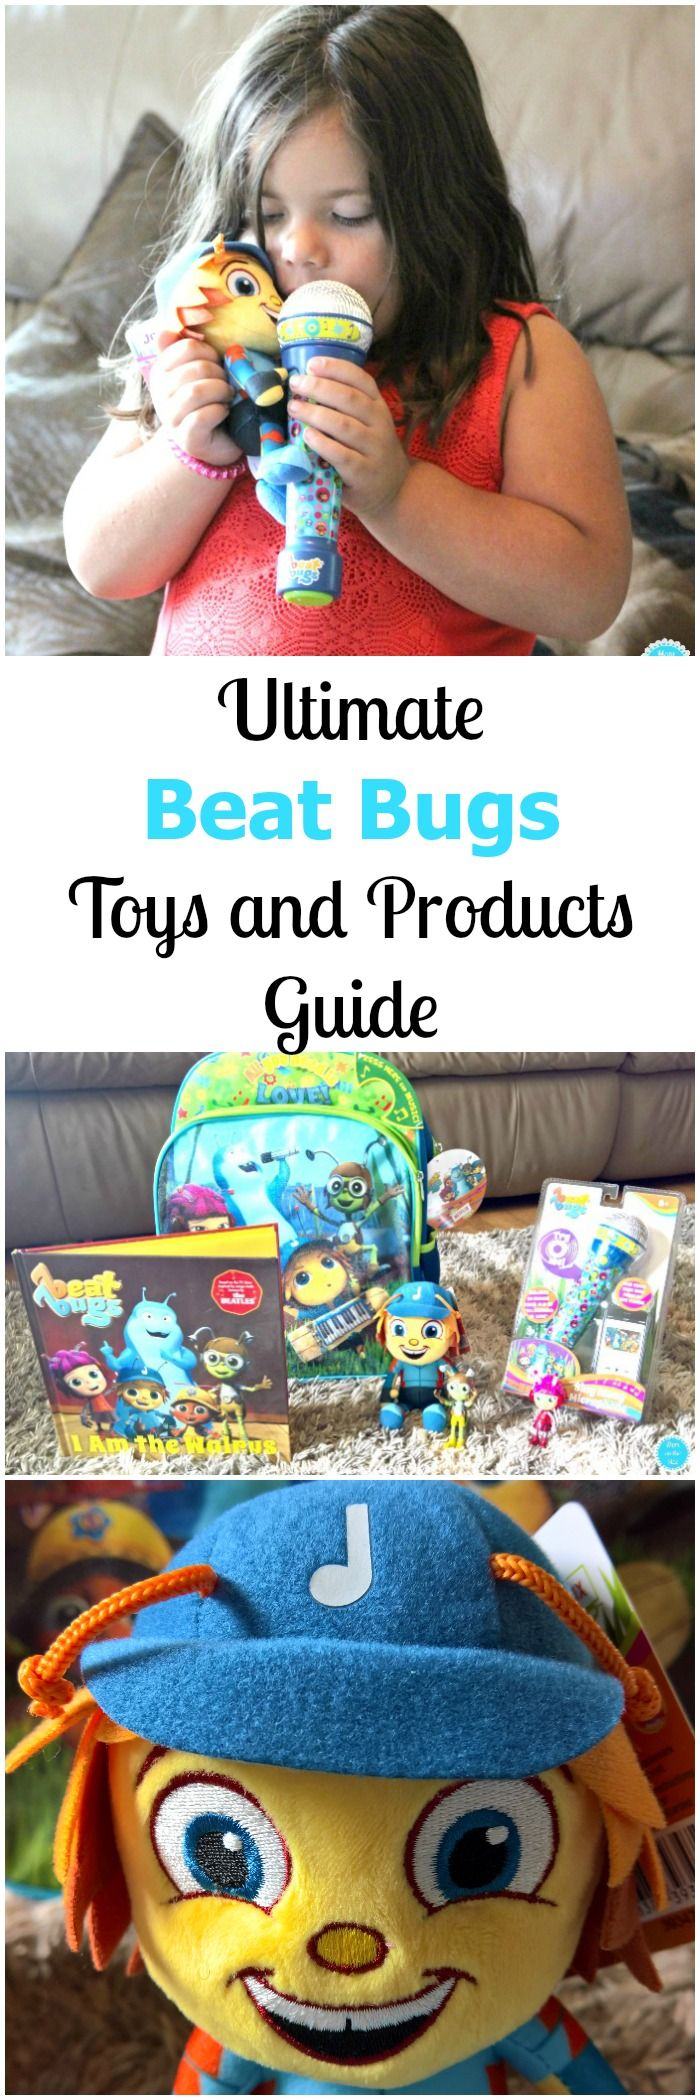 "The Netflix Kids Original ""Beat Bugs"" is a favorite in our house! This Ultimate Beat Bugs Toys and Products is loaded with great stuff, including Beat Bugs Halloween Costumes! #ad StreamTeam"